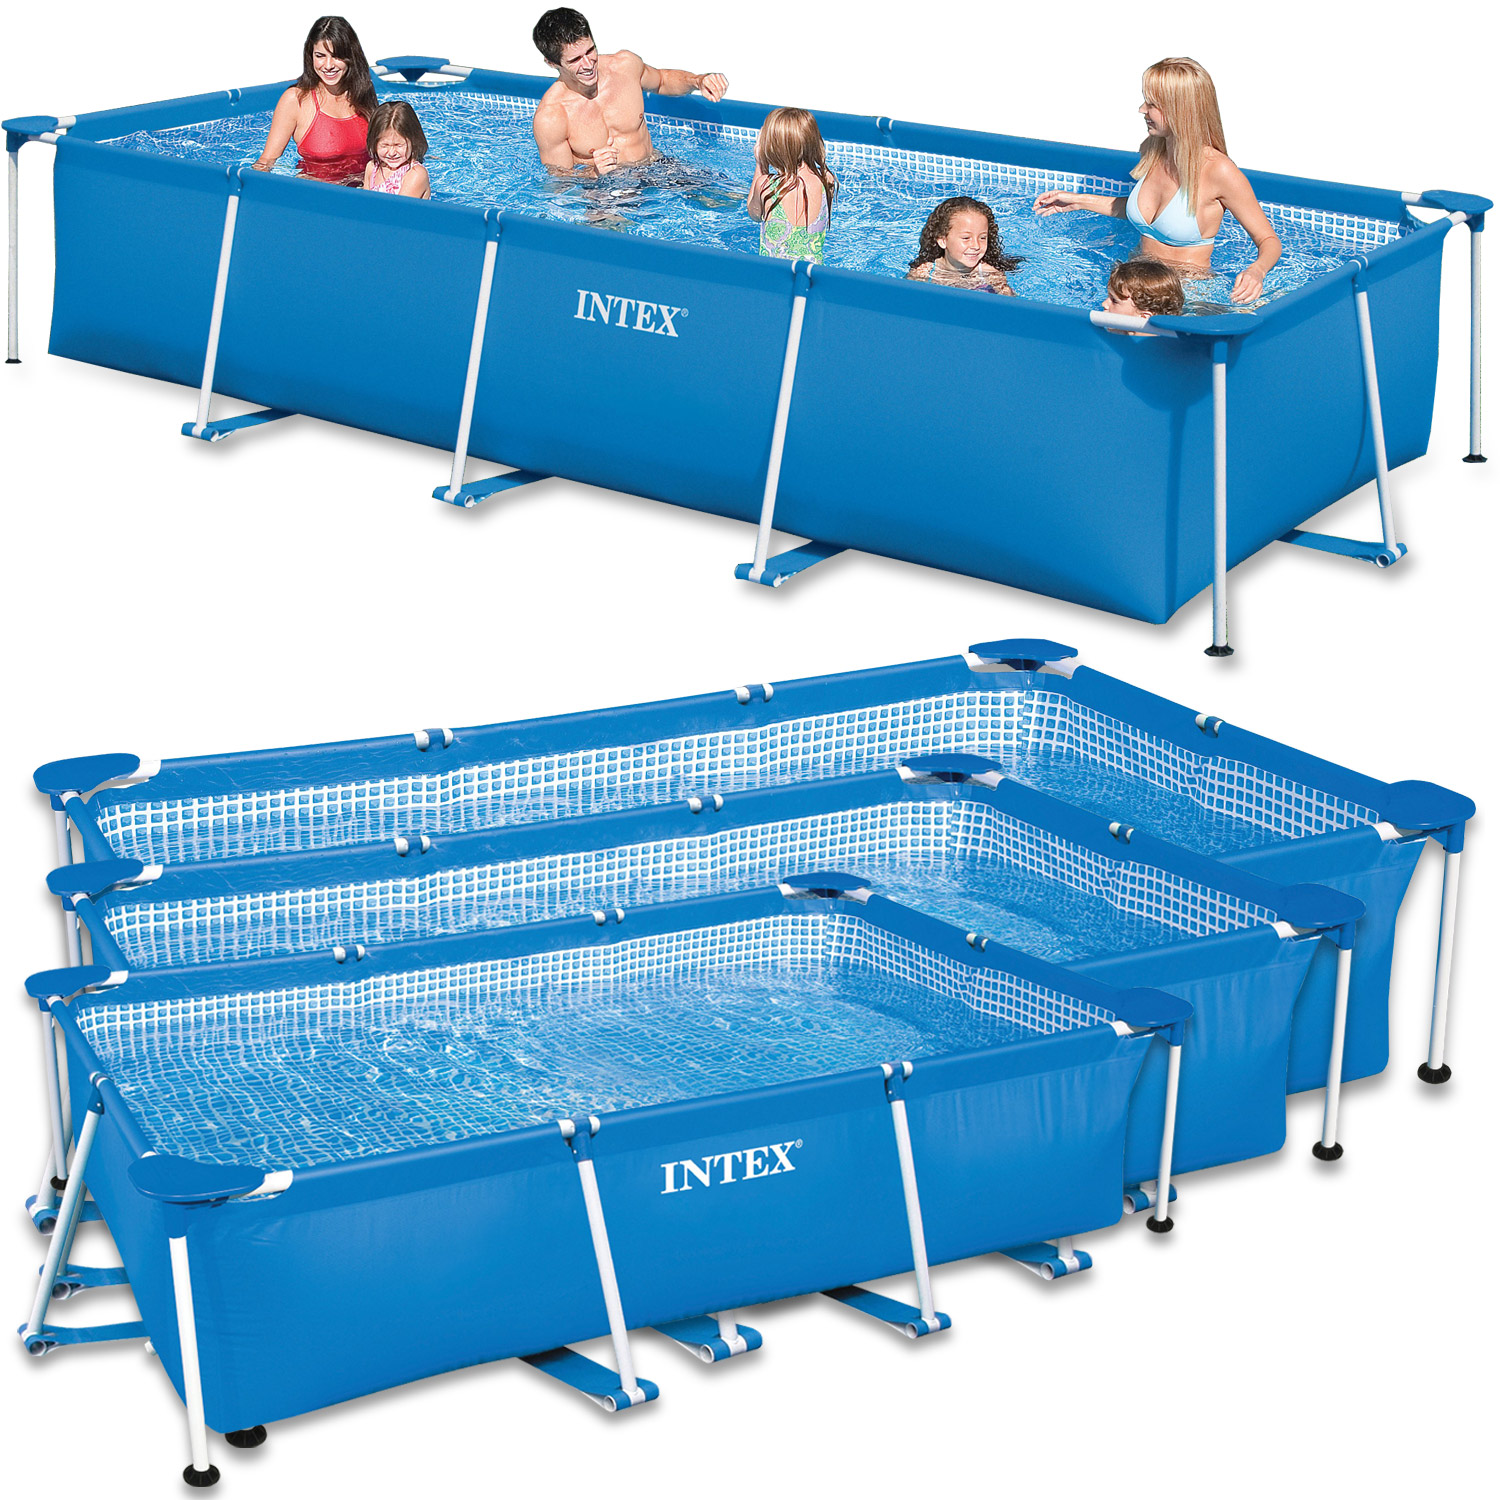 Intex Family Swimming Pool Rectangular Frame Ebay